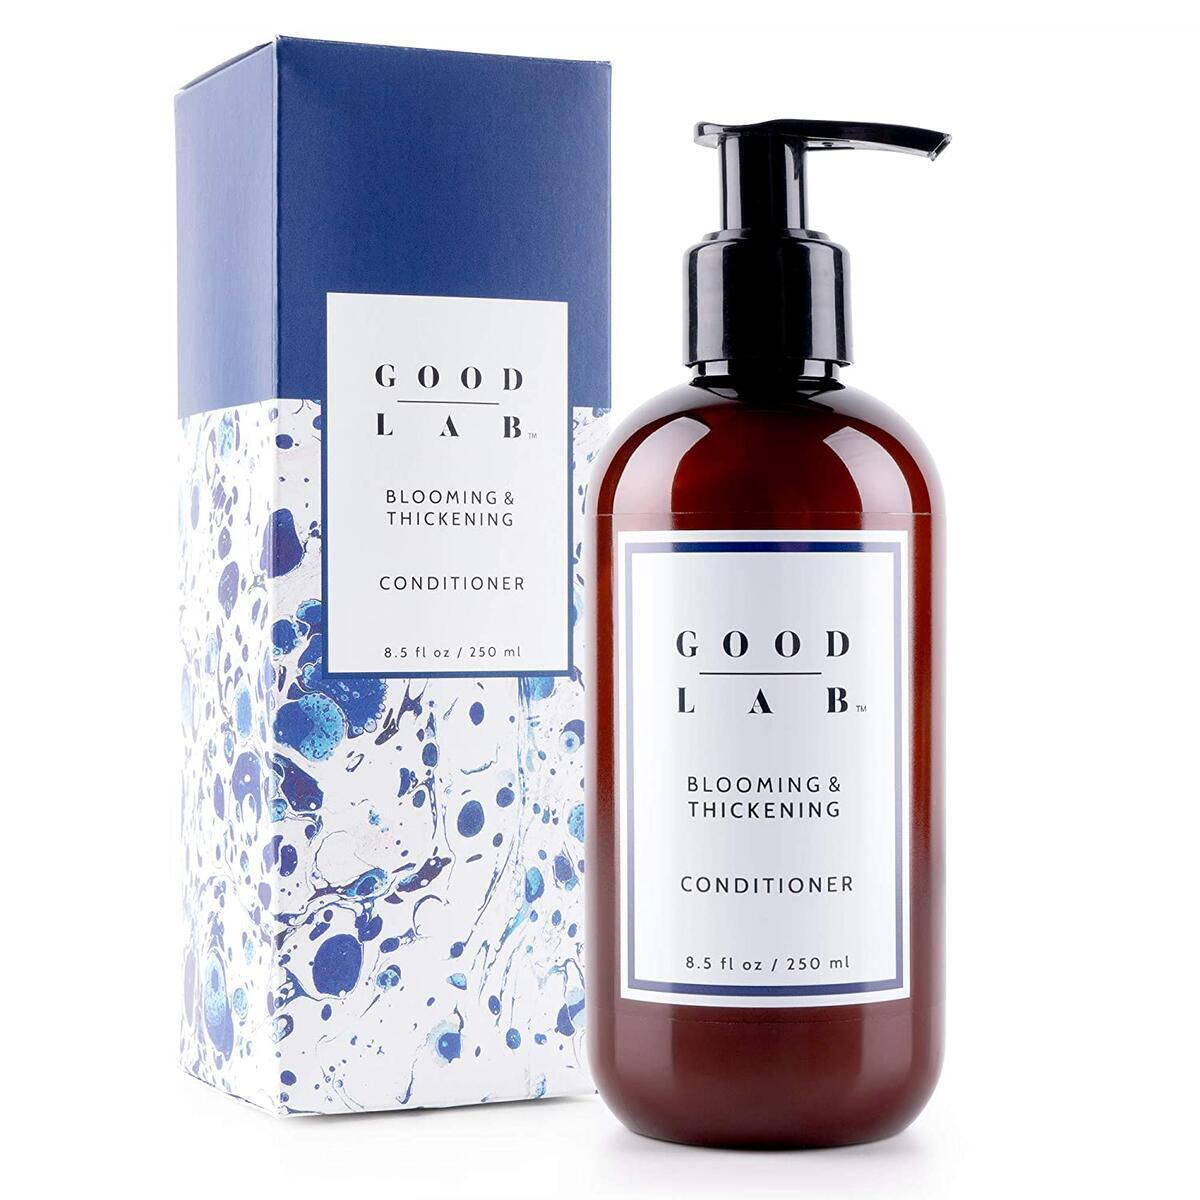 Good Lab Blooming & Thickening Conditioner for Hair Loss, Thinning, Hair Growth - Packed w/DHT Blockers & Antioxidants - SLS-Free - For All Hair Types